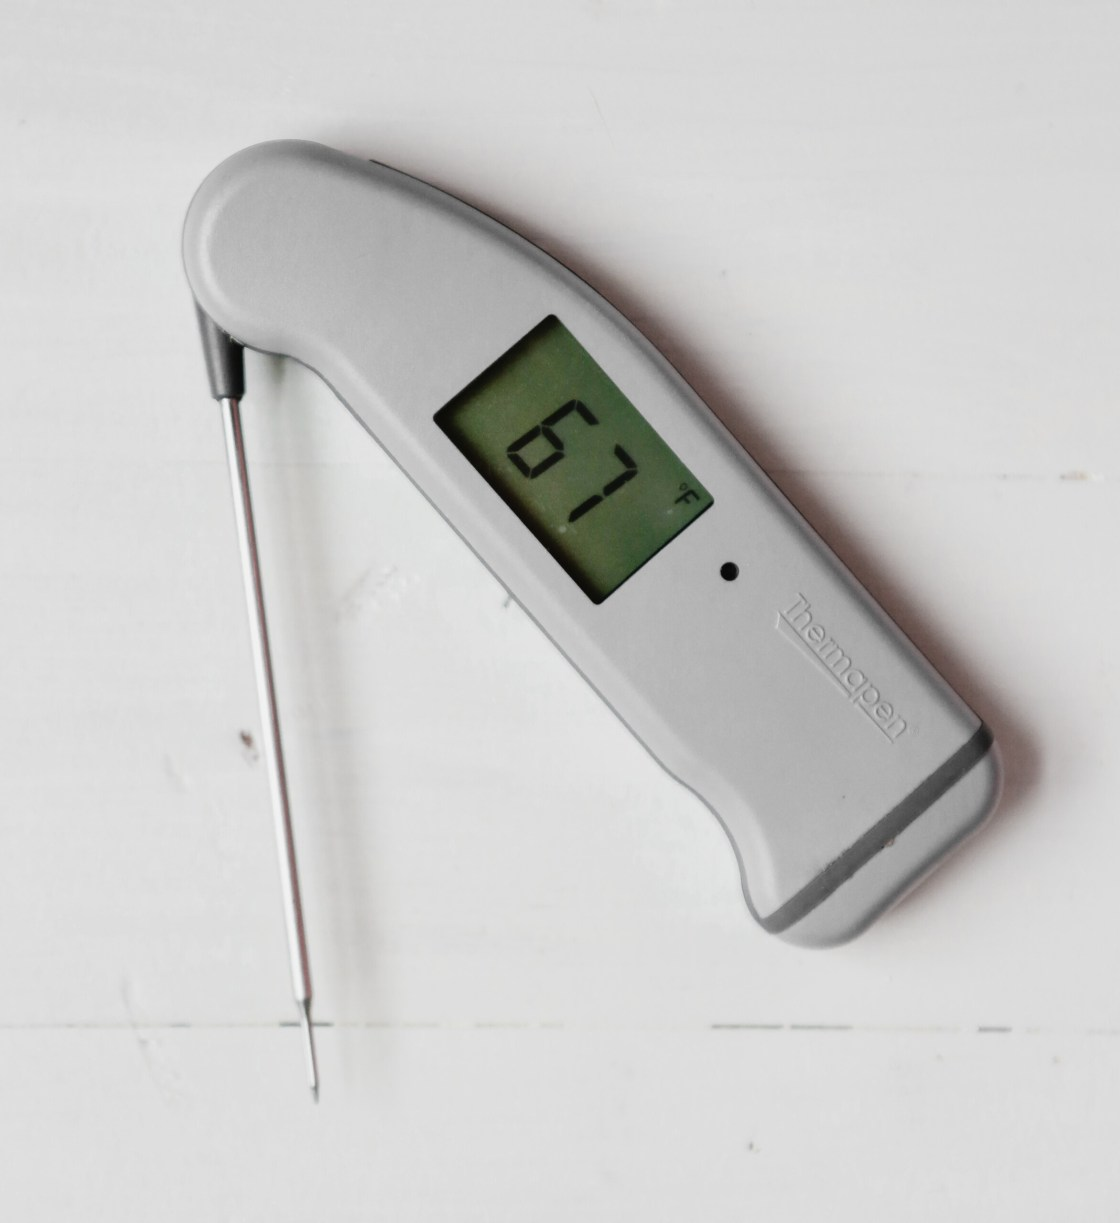 Photograph of a Thermapen from ThermoWorks